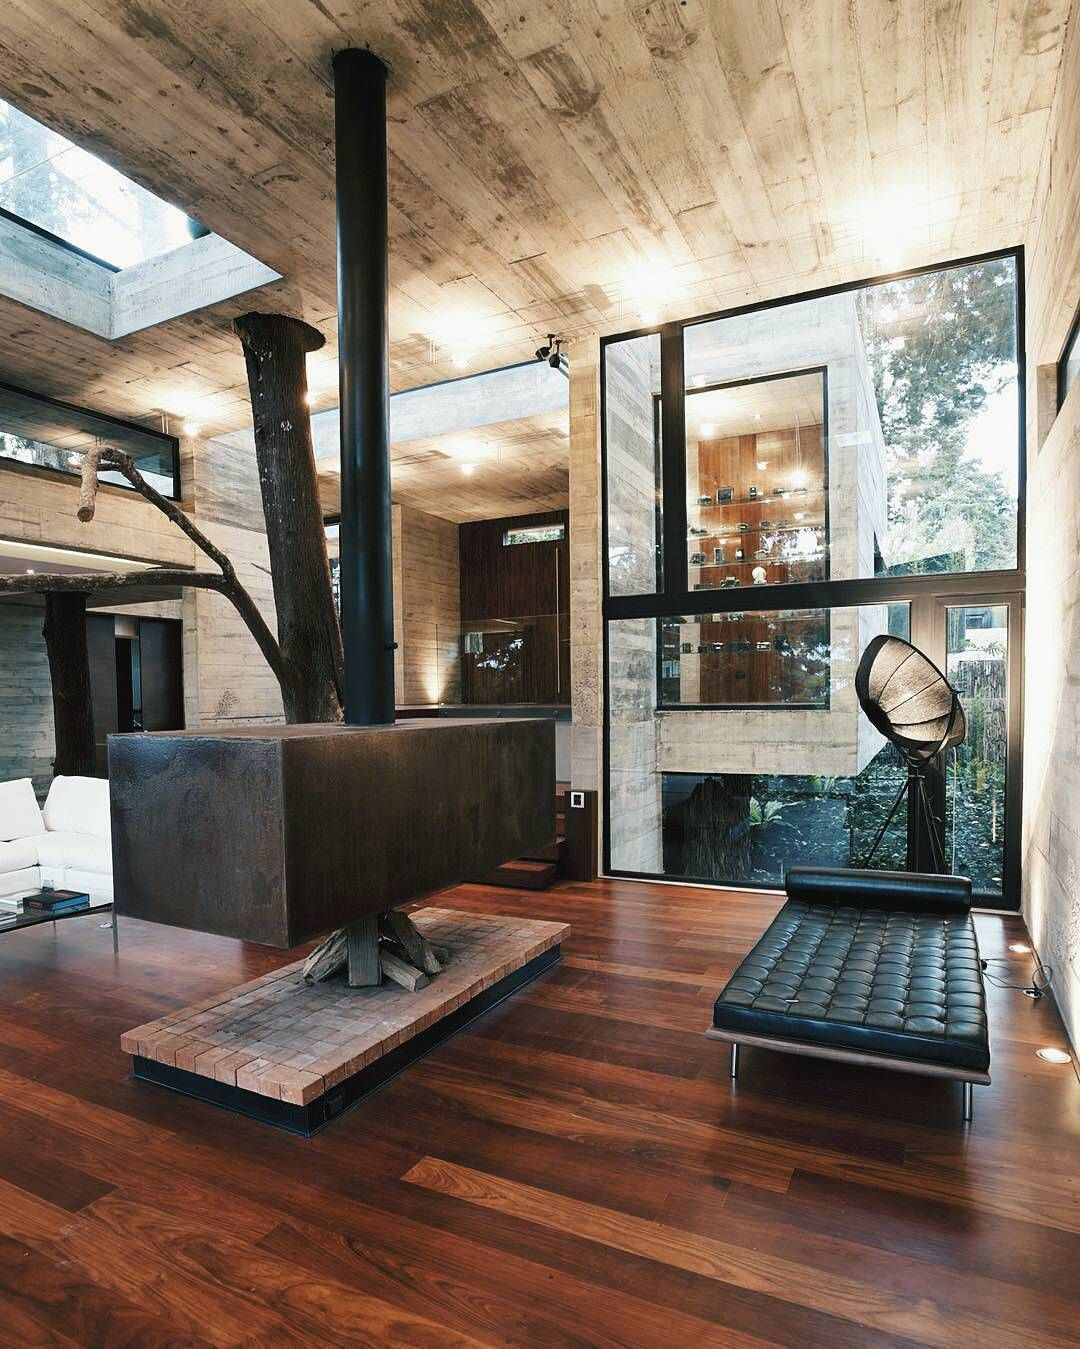 Modern Chic Living Room I Absolutely Adore This Fireplace Its Like An Old Industrial